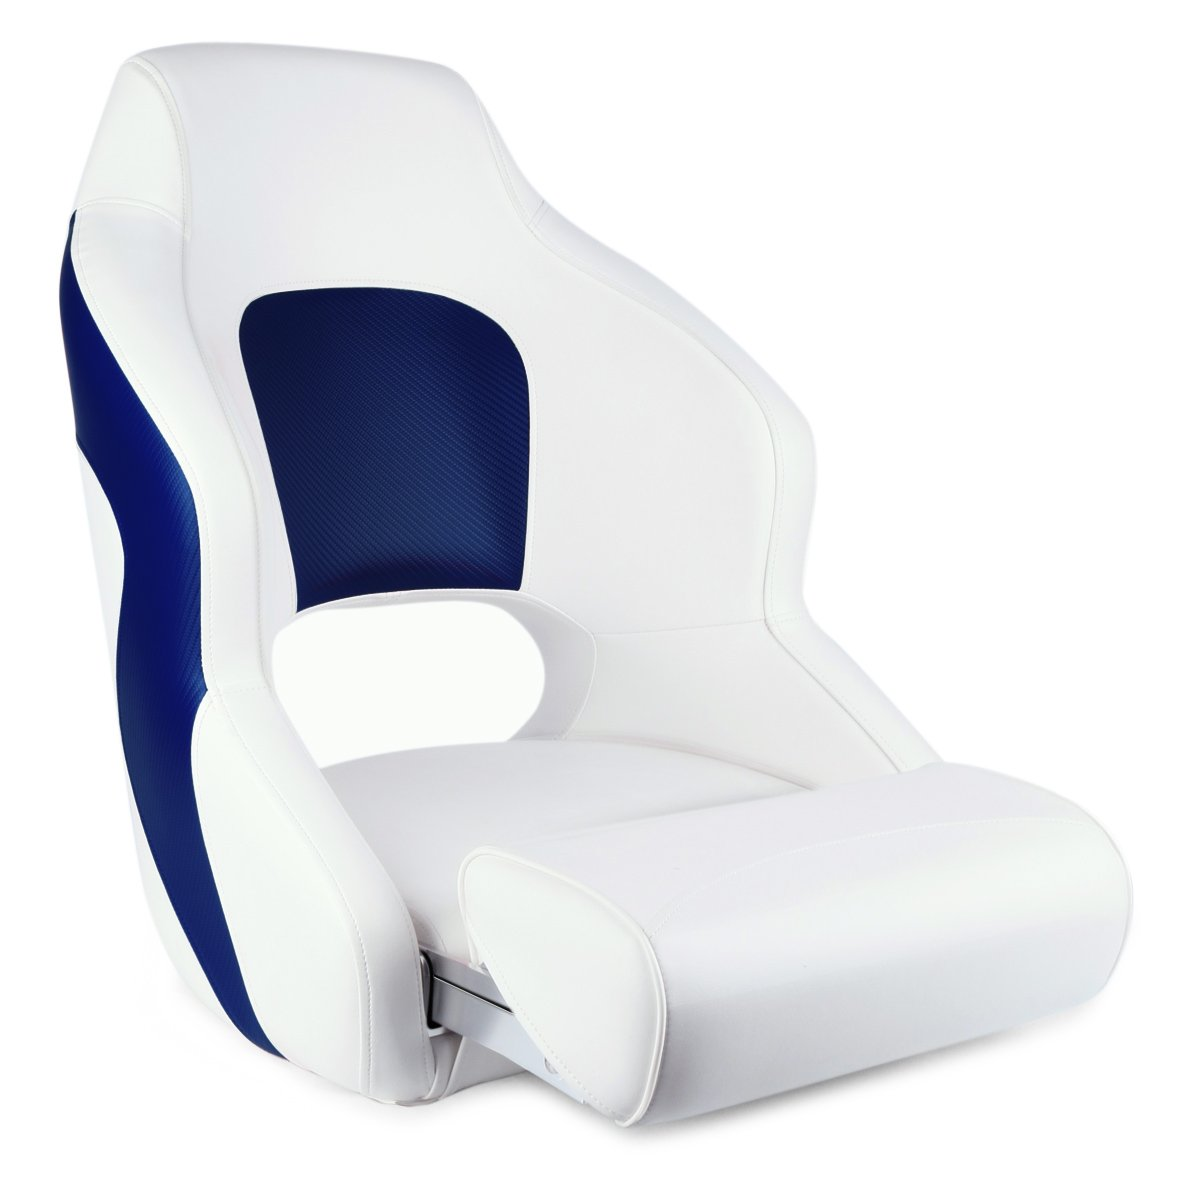 Leader Accessories Two Tone Captains Bucket Seat Premium Sports Flip Up Boat Seat (White/Blue) by Leader Accessories